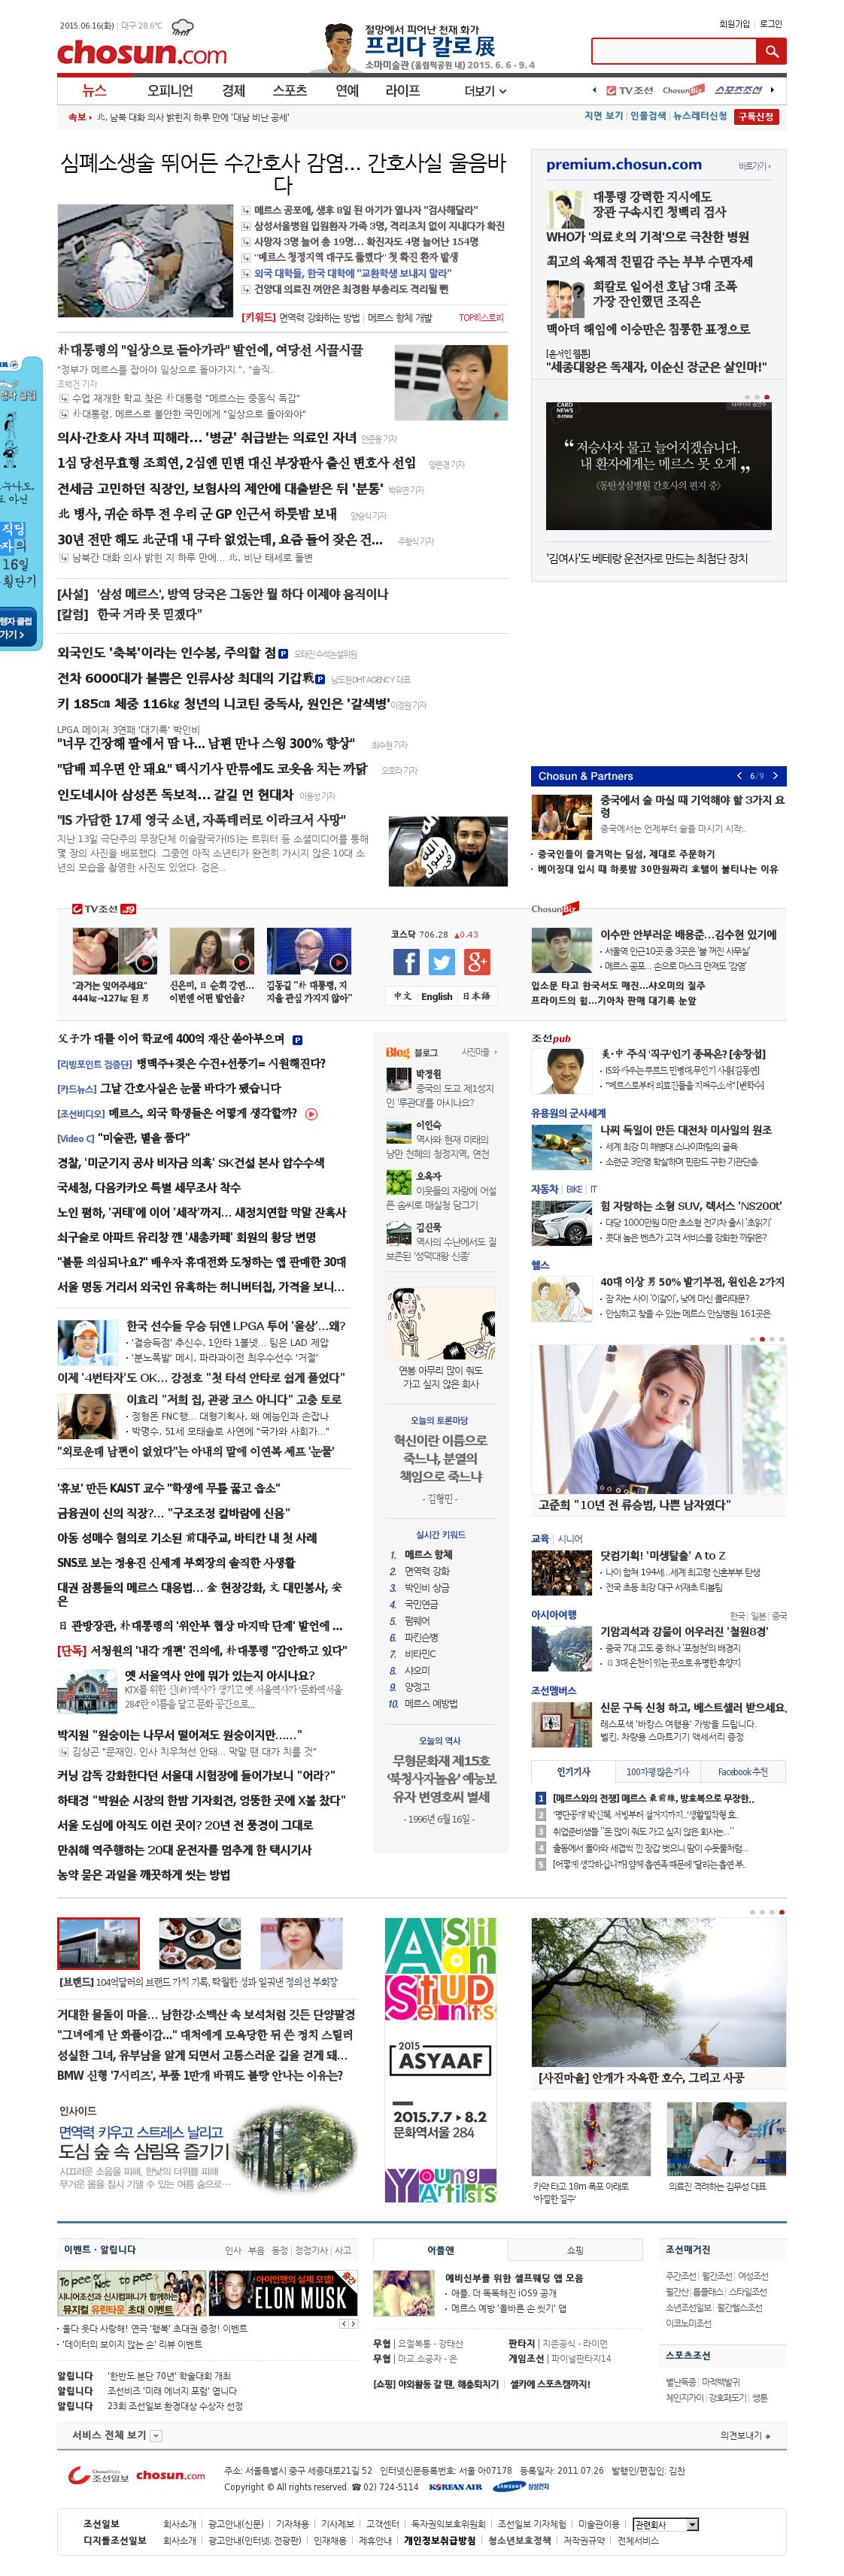 chosun.com at Tuesday June 16, 2015, 8:01 a.m. UTC